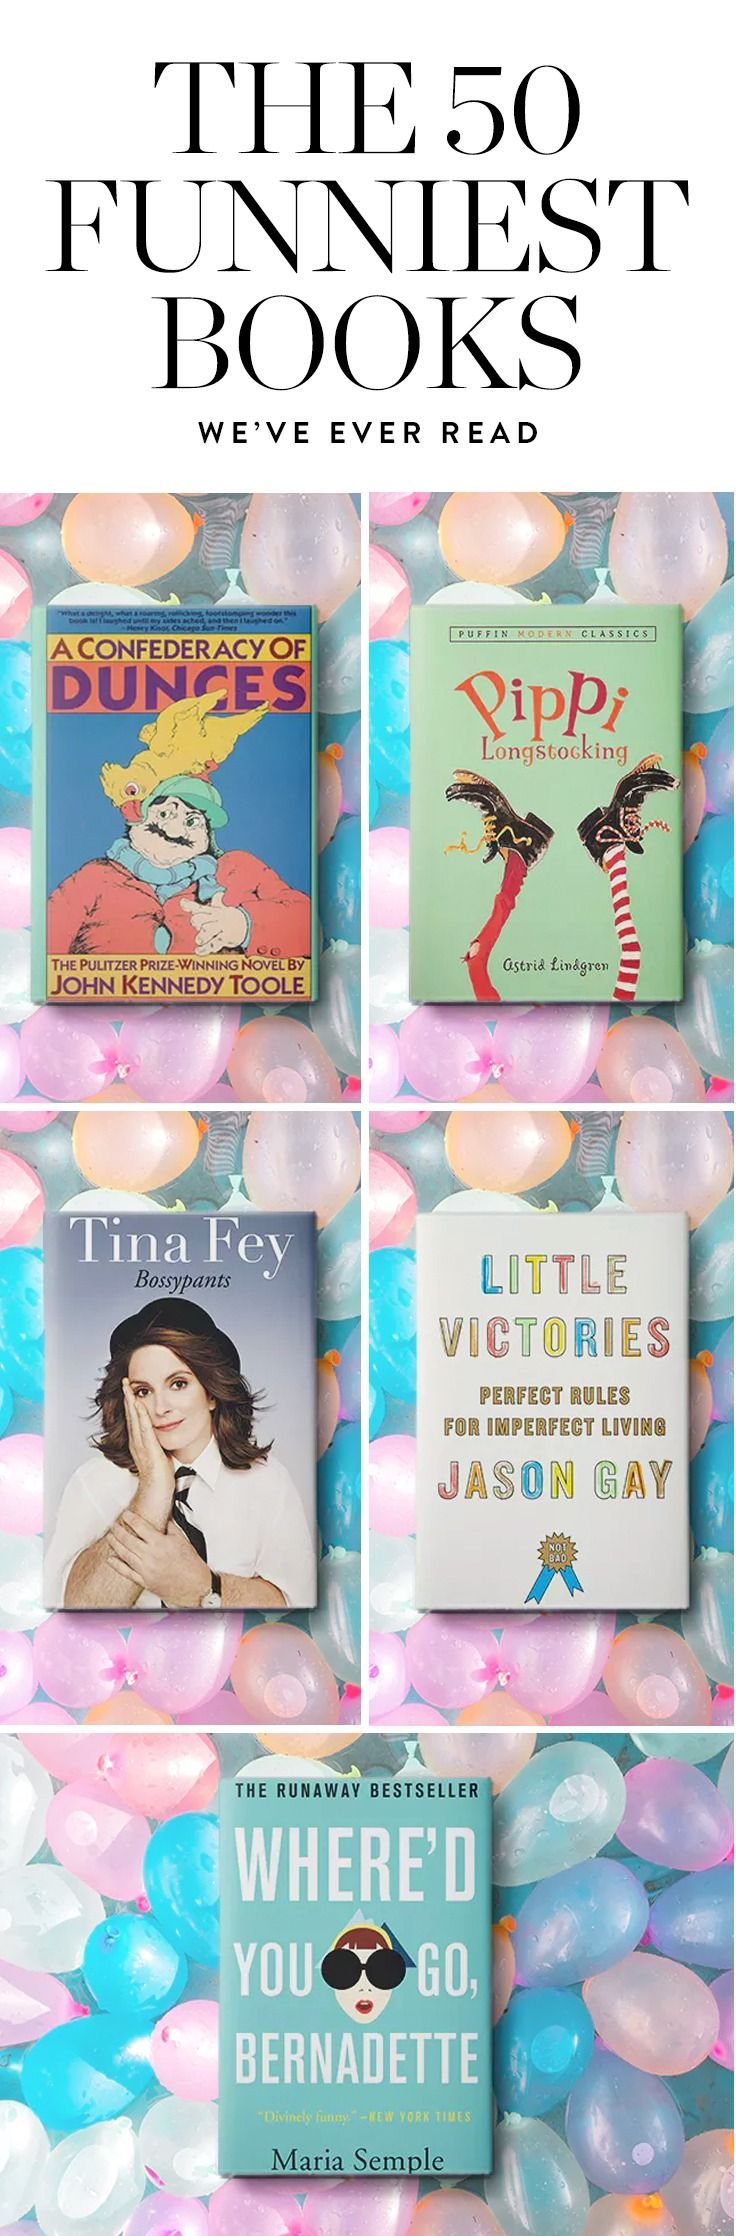 Here are the funniest books that are guaranteed to crack you up.